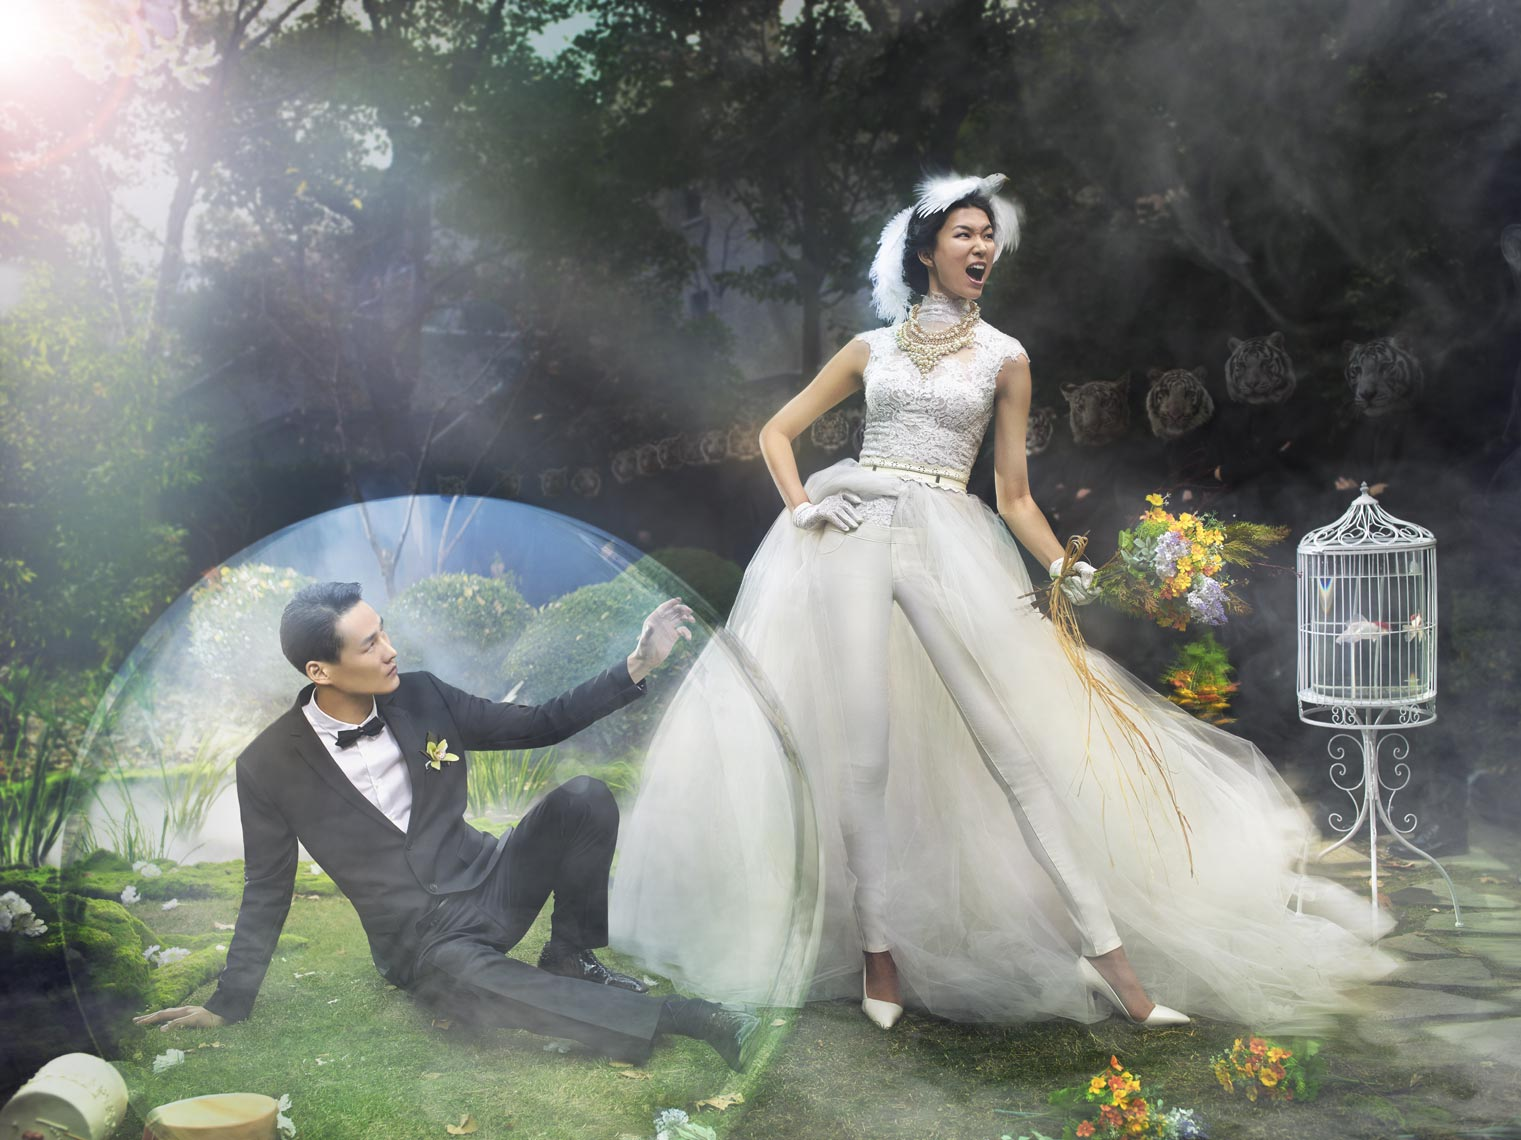 Howard-Huang-Photography-Fashion-Wedding0012